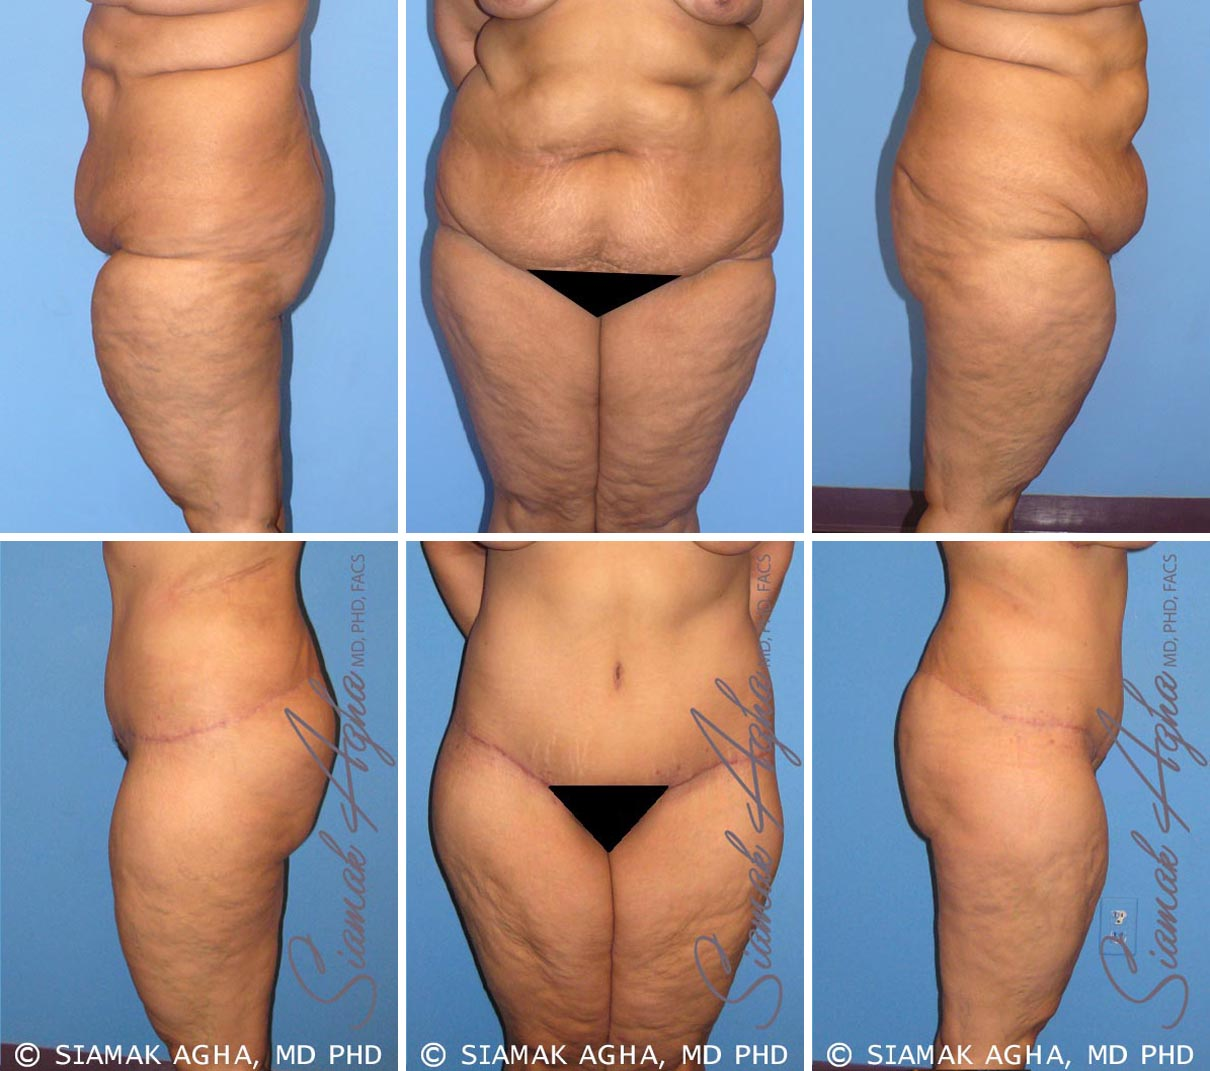 Tummy Tuck Before and After Set 2